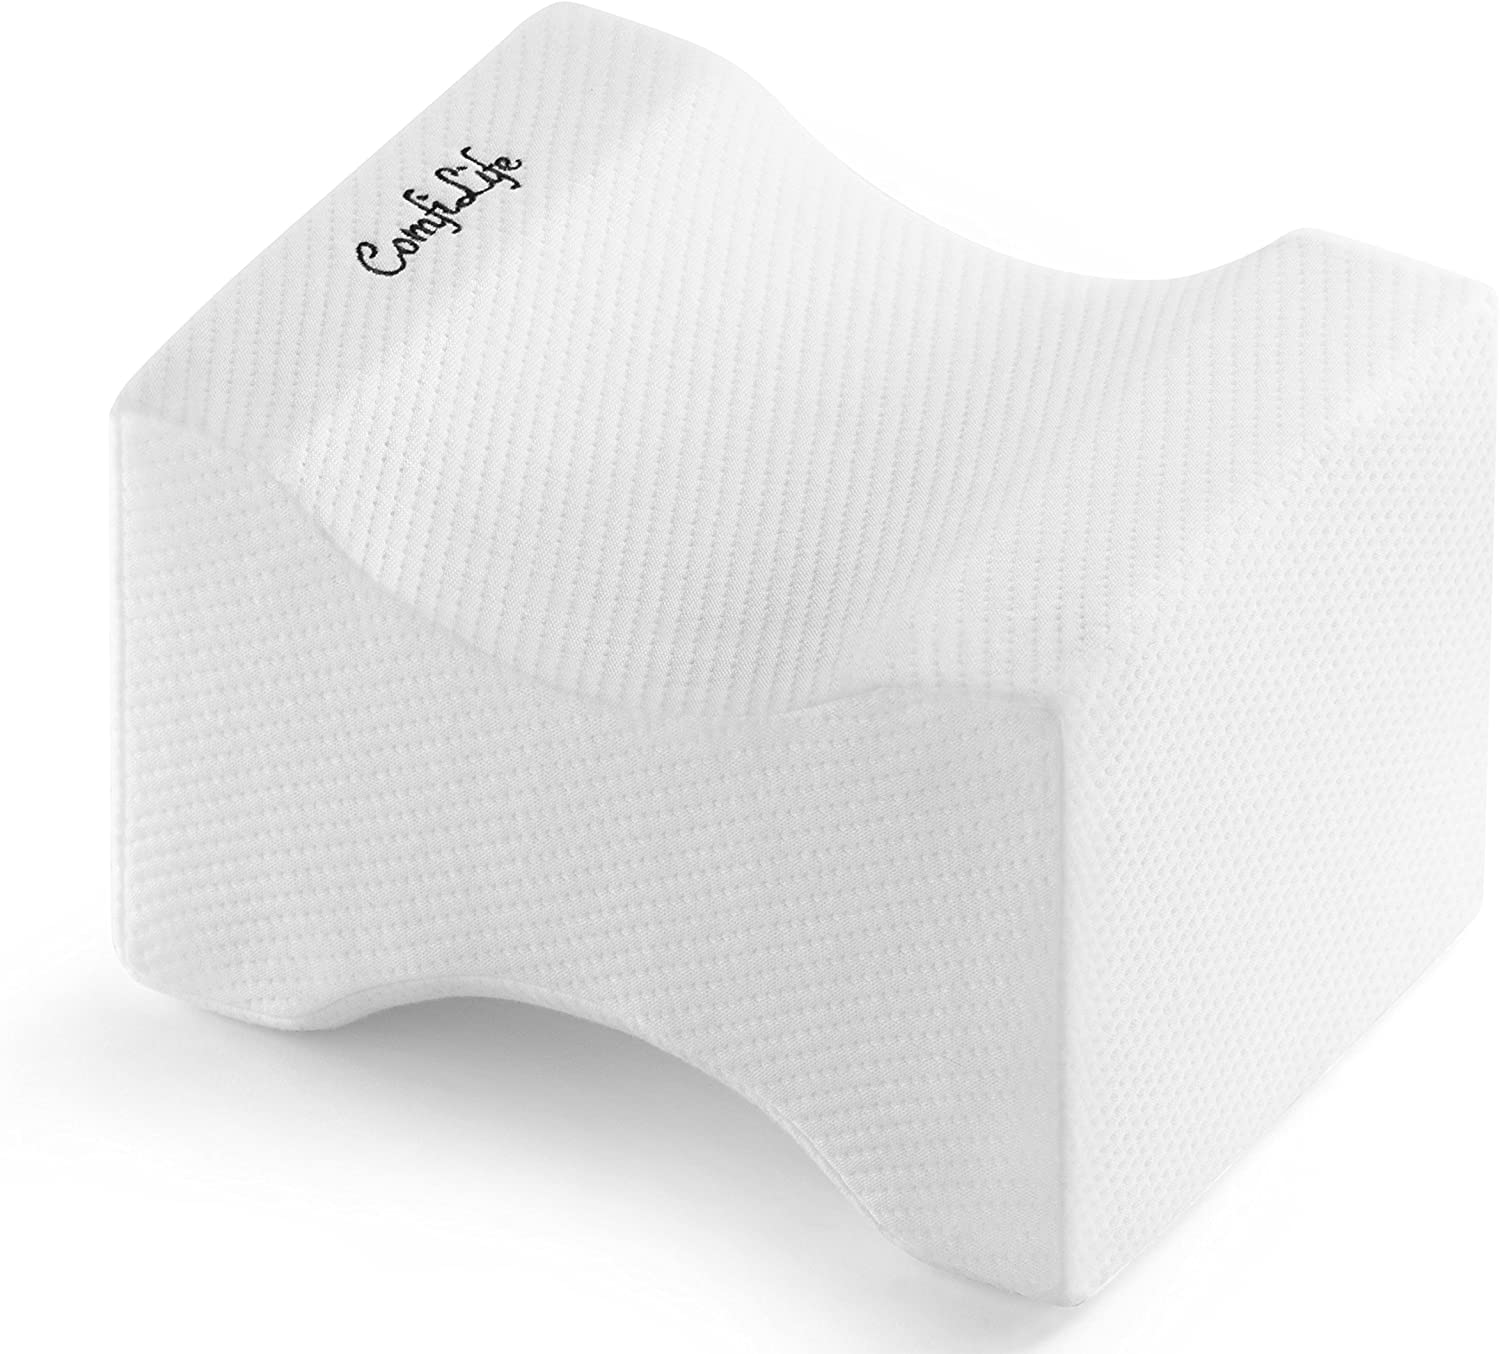 best pillow for knee pain and side sleepers. Knee pain pillow review for side sleepers.